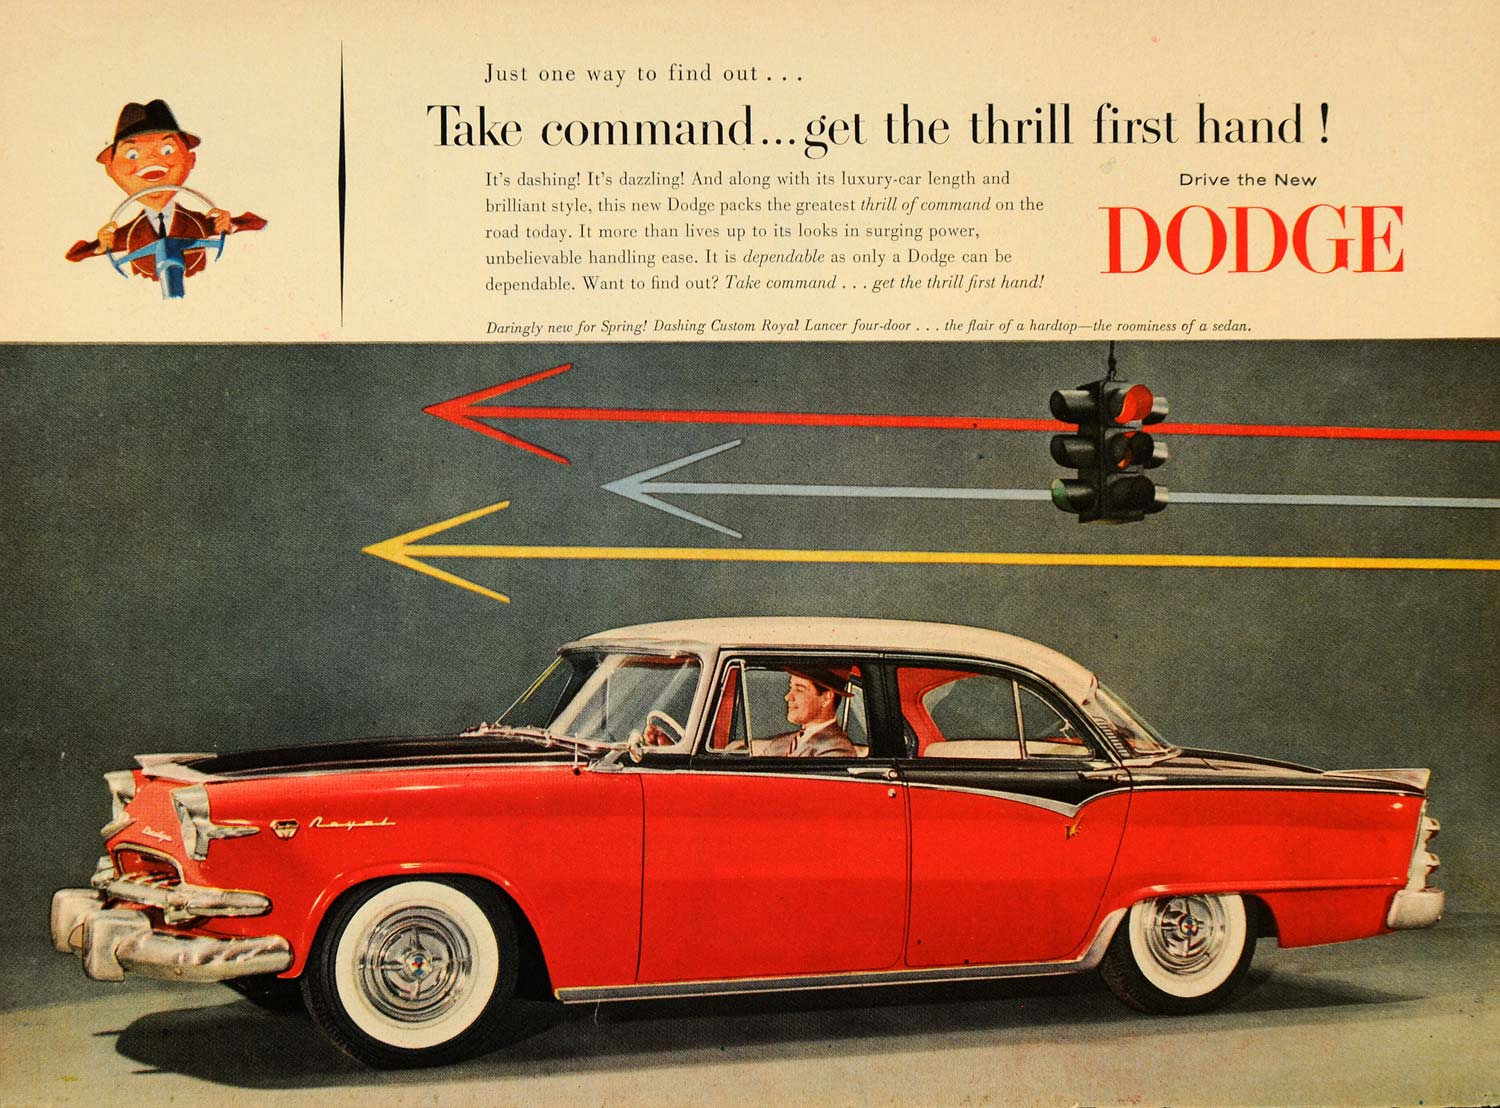 1955 Ad Red Dodge Royal Lancer Four-door Automobile - ORIGINAL ADVERTISING TM6